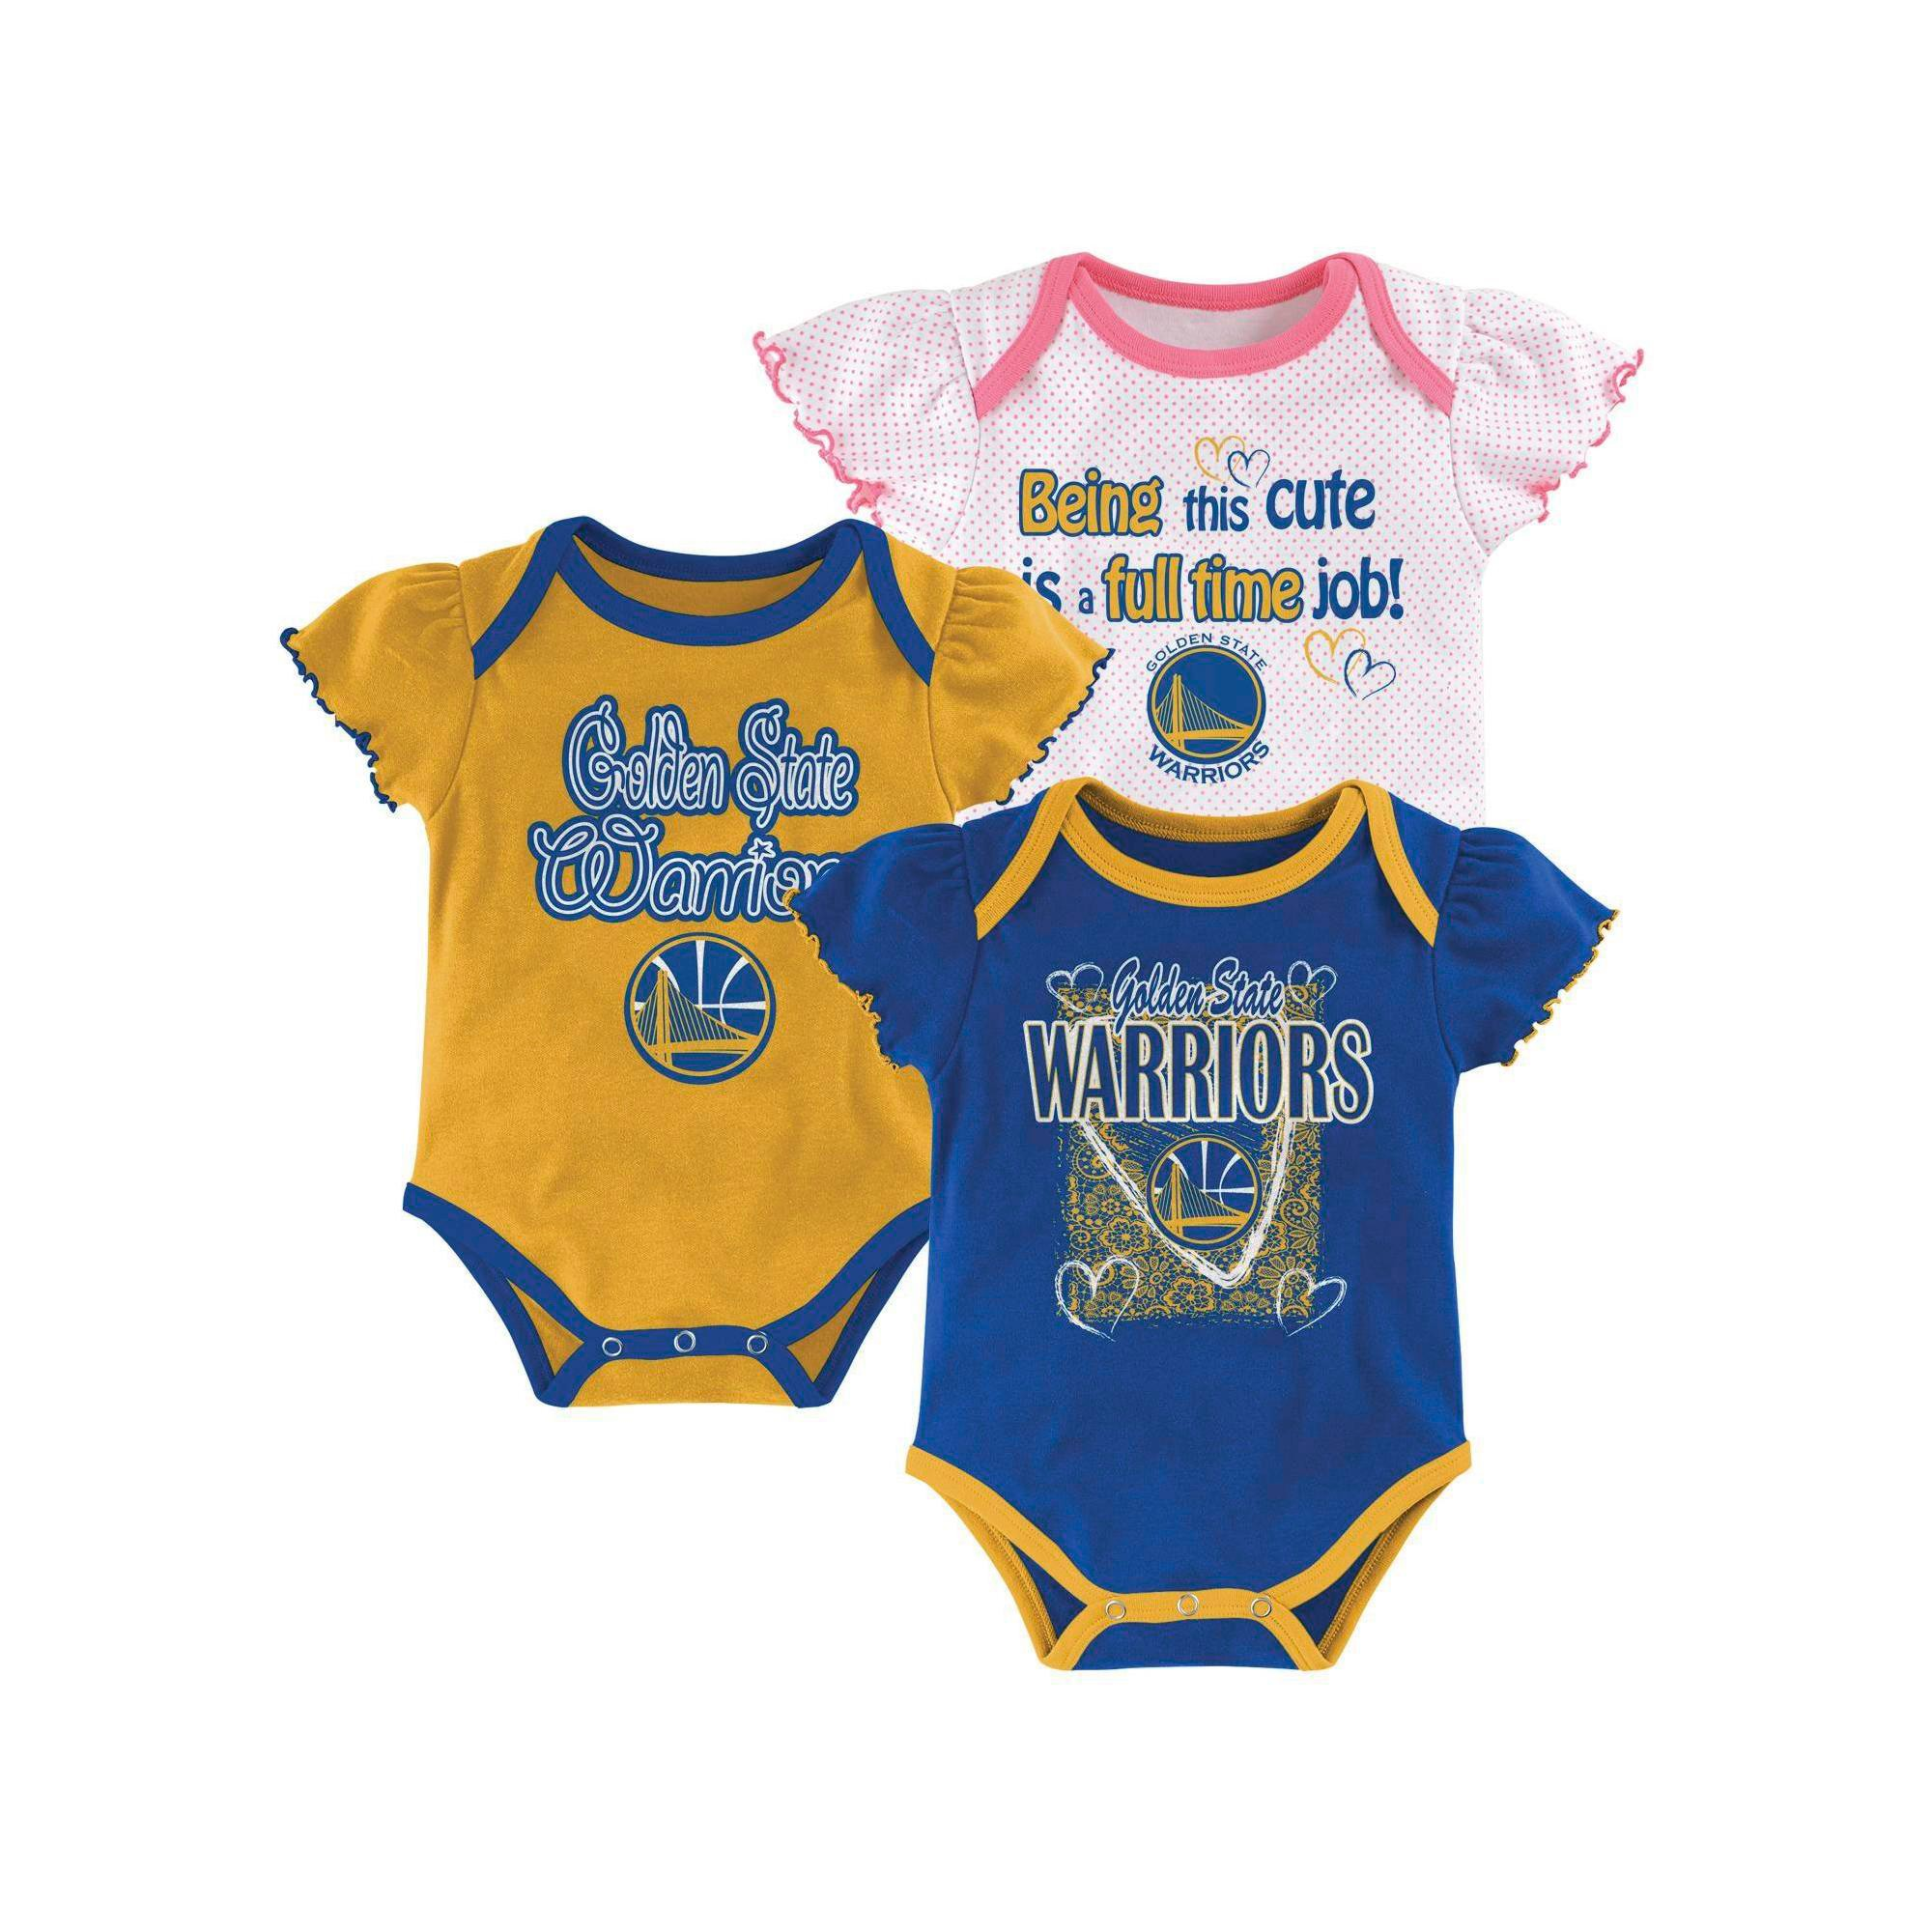 Golden State Warriors Girls Infant Body Suit 6 9 M Multicolored